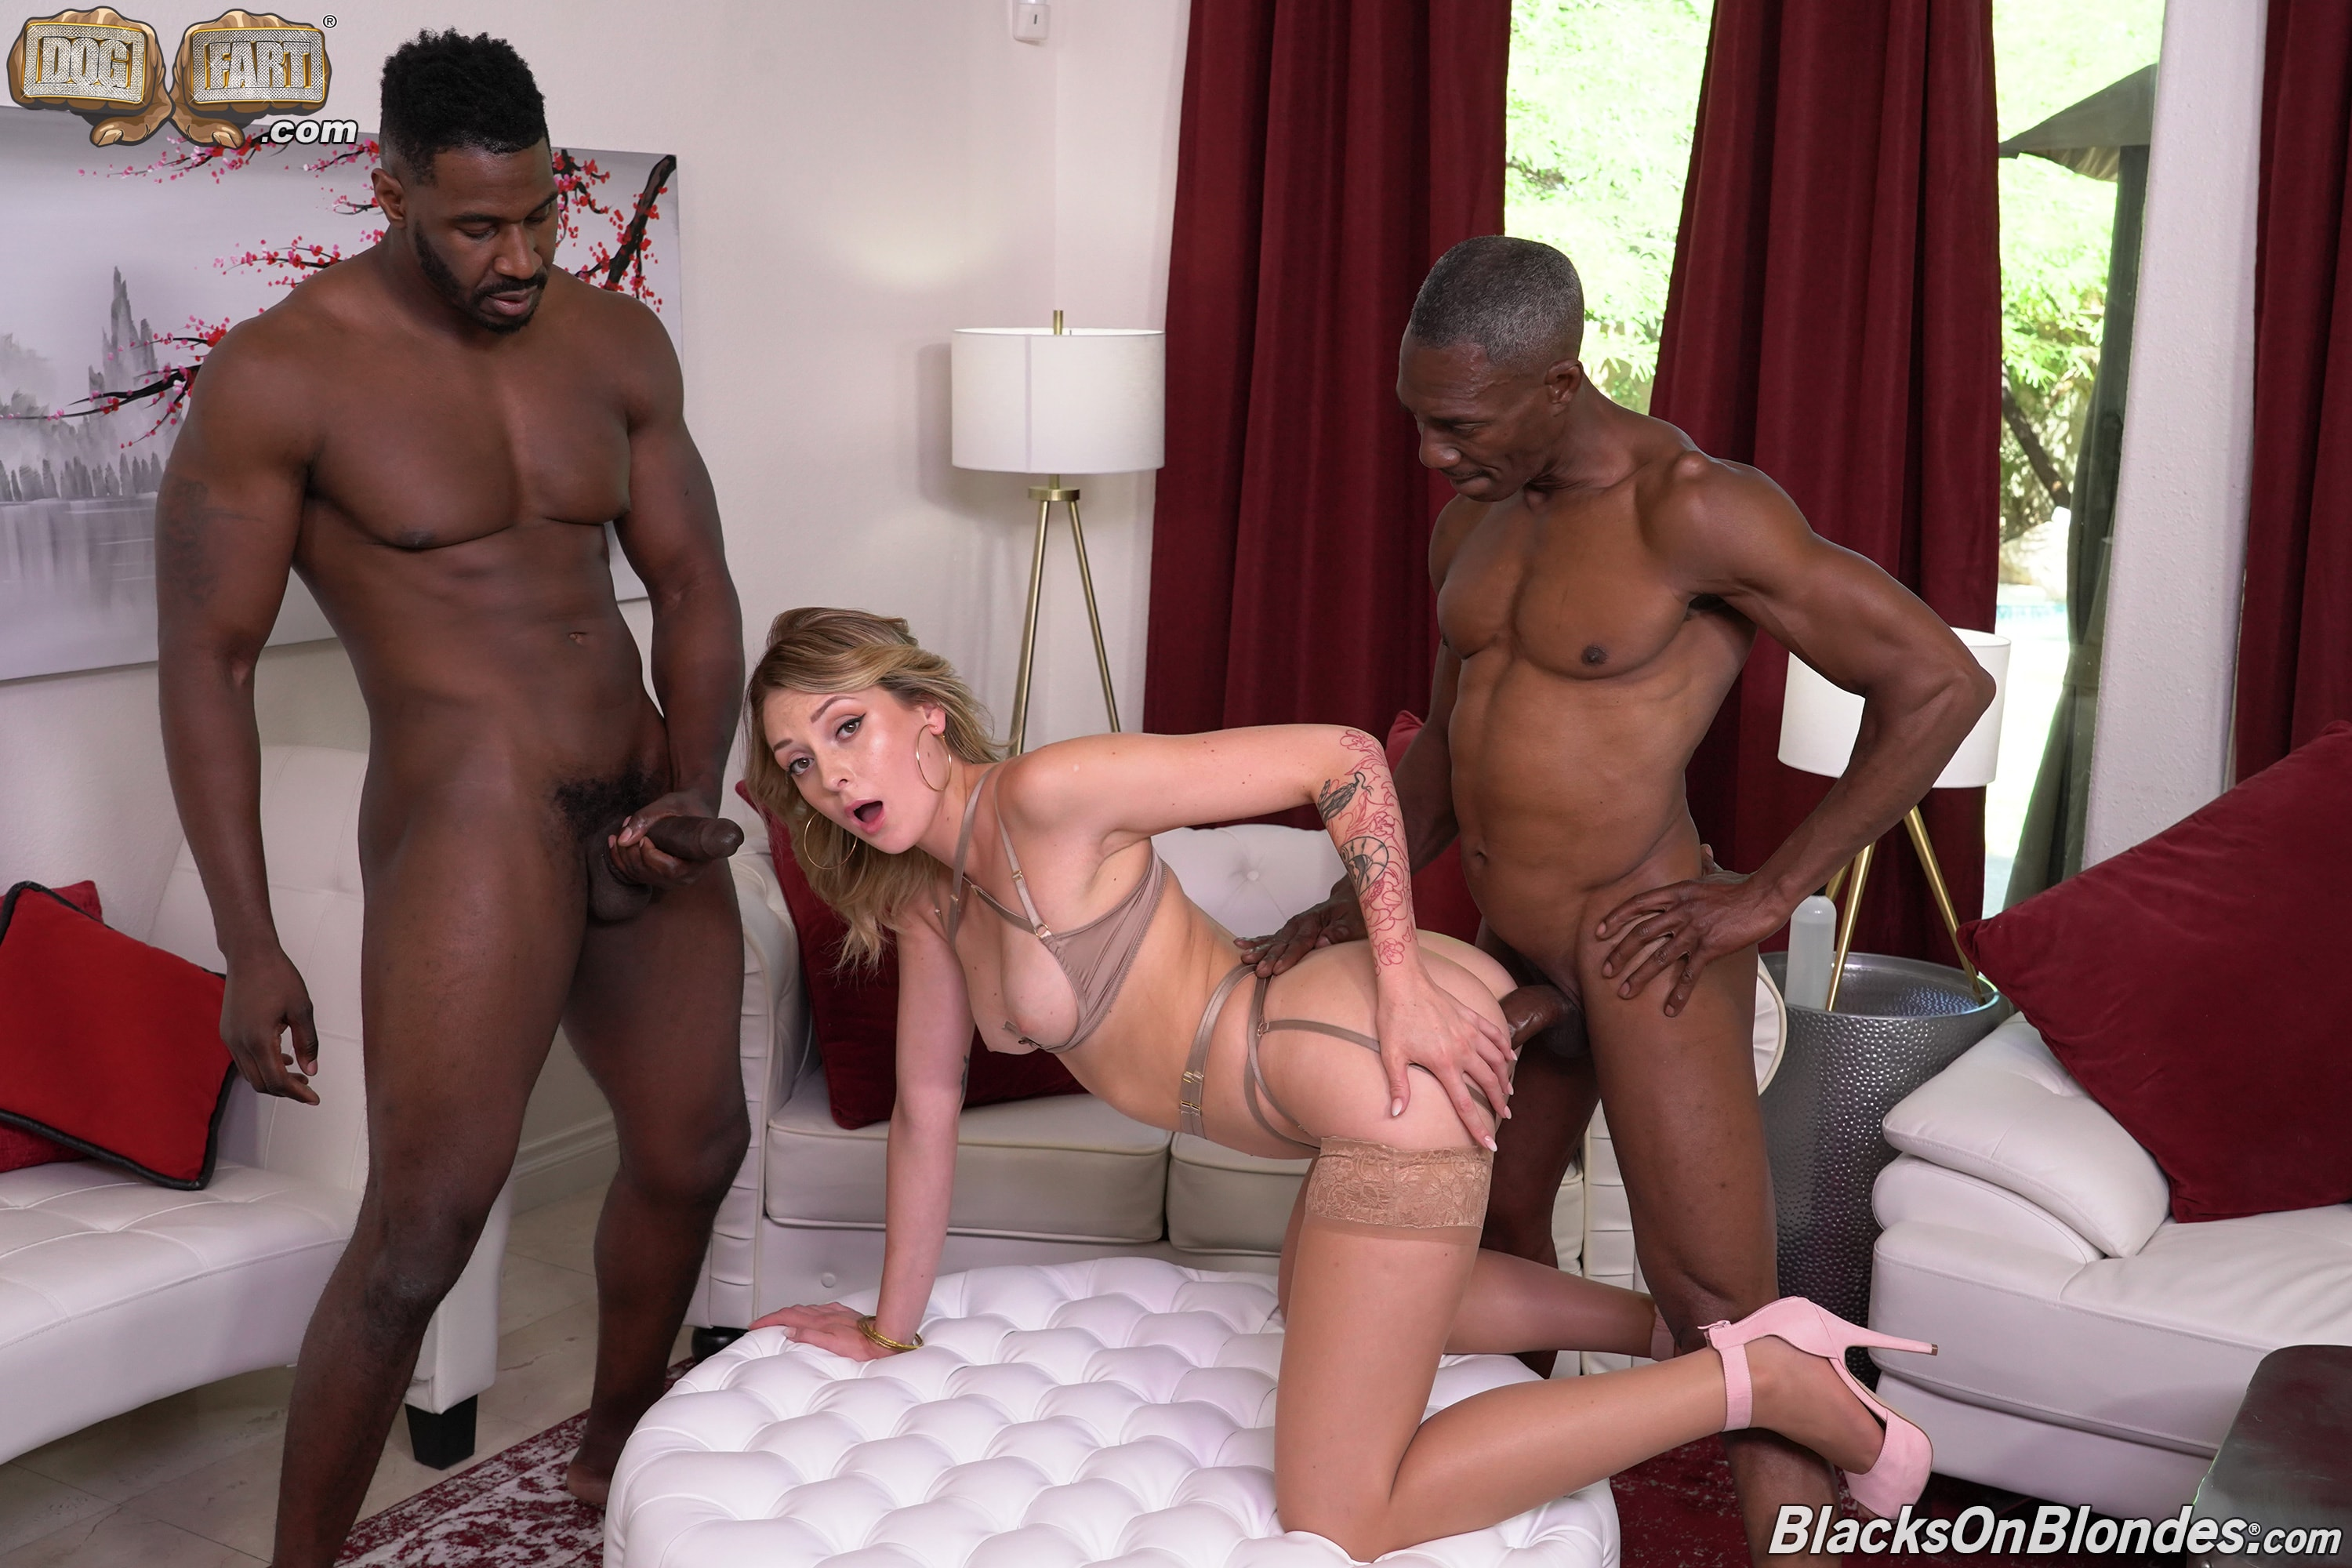 Charlotte Sins - Charlotte Sins - Blacks On Blondes - Scene 2 | Picture (21)